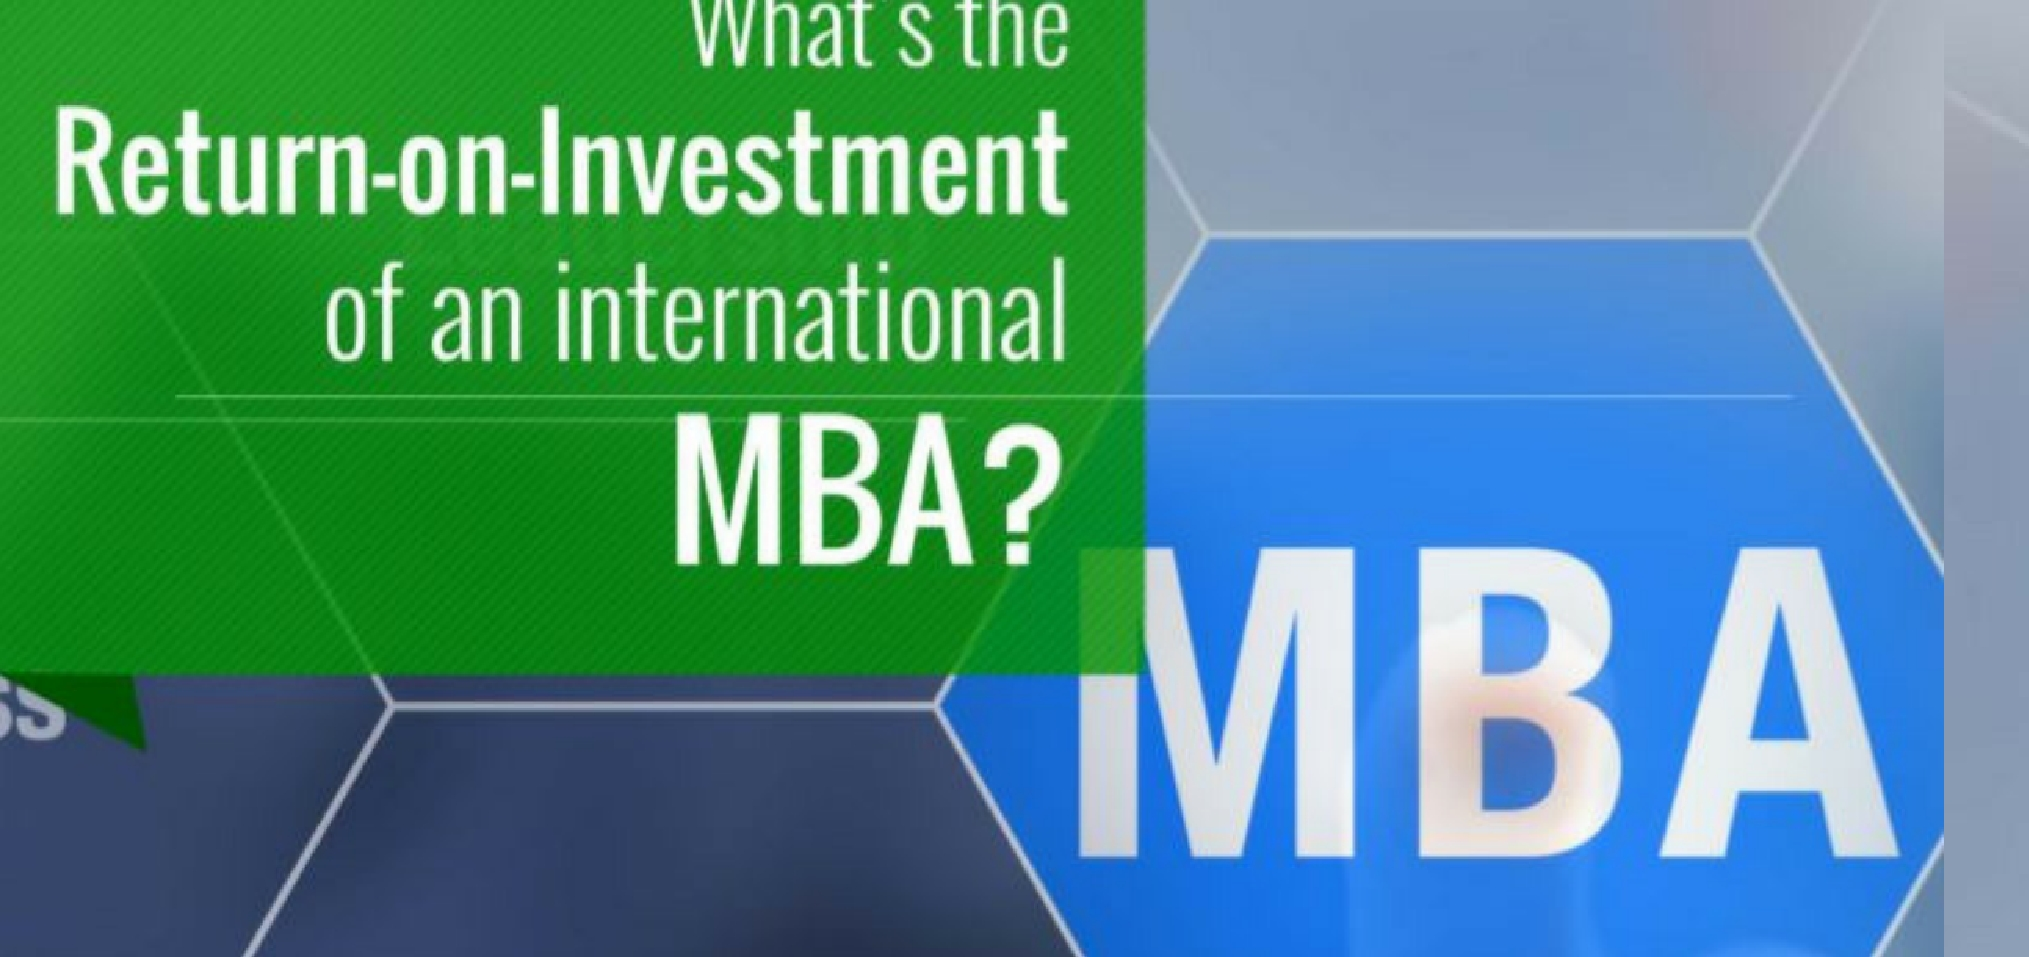 Return-On-Investment of an international MBA